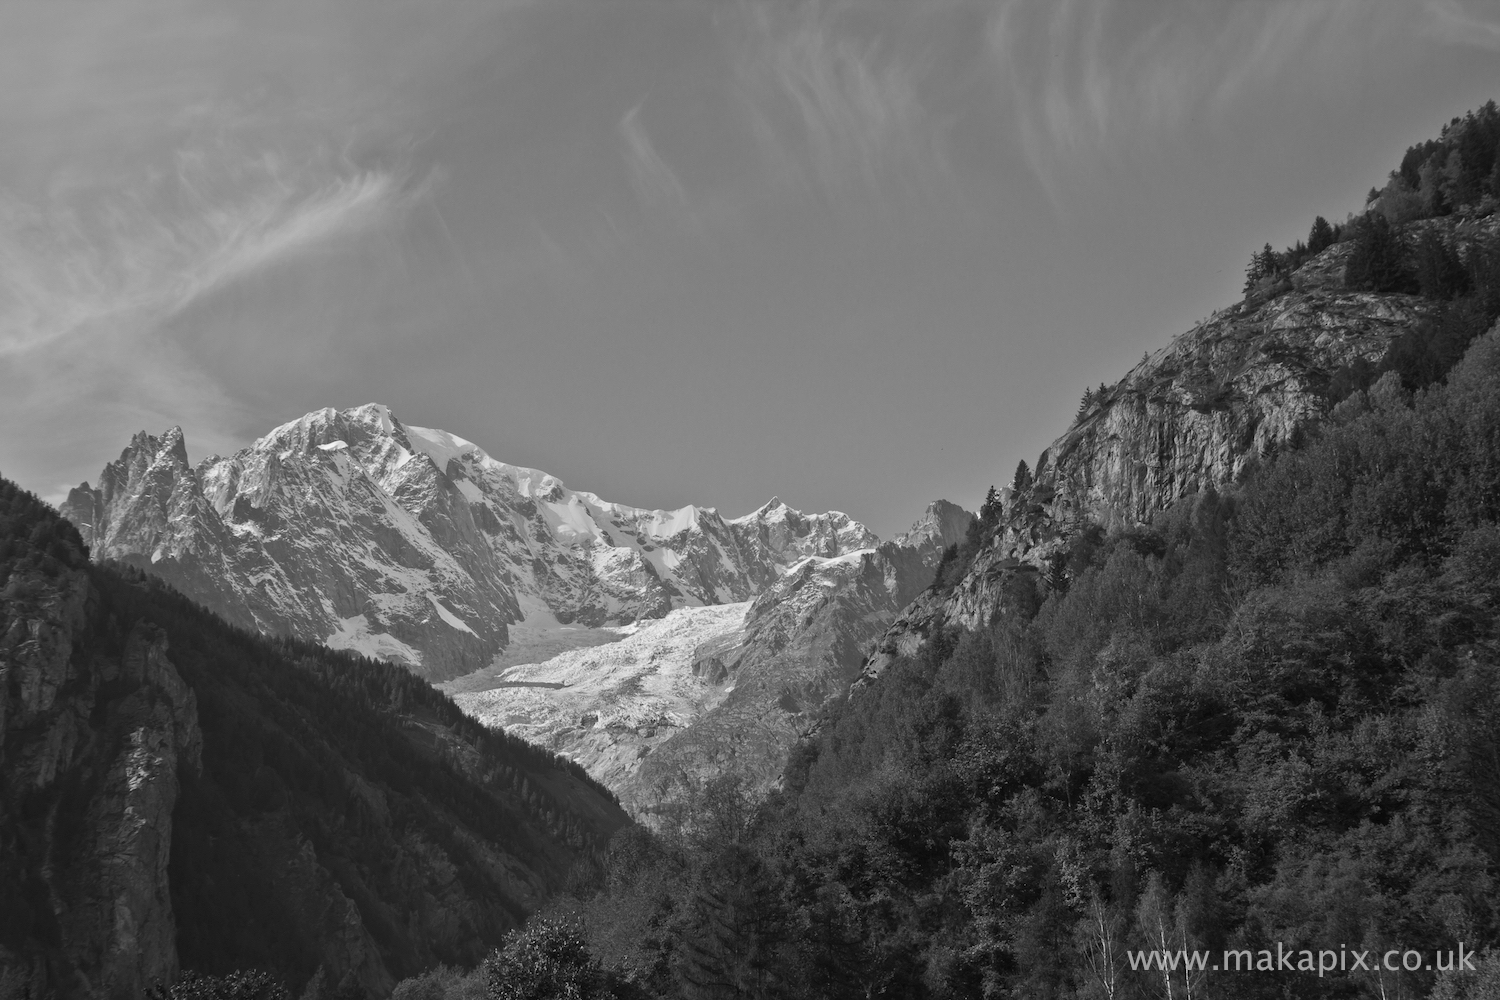 The Alps in b&w